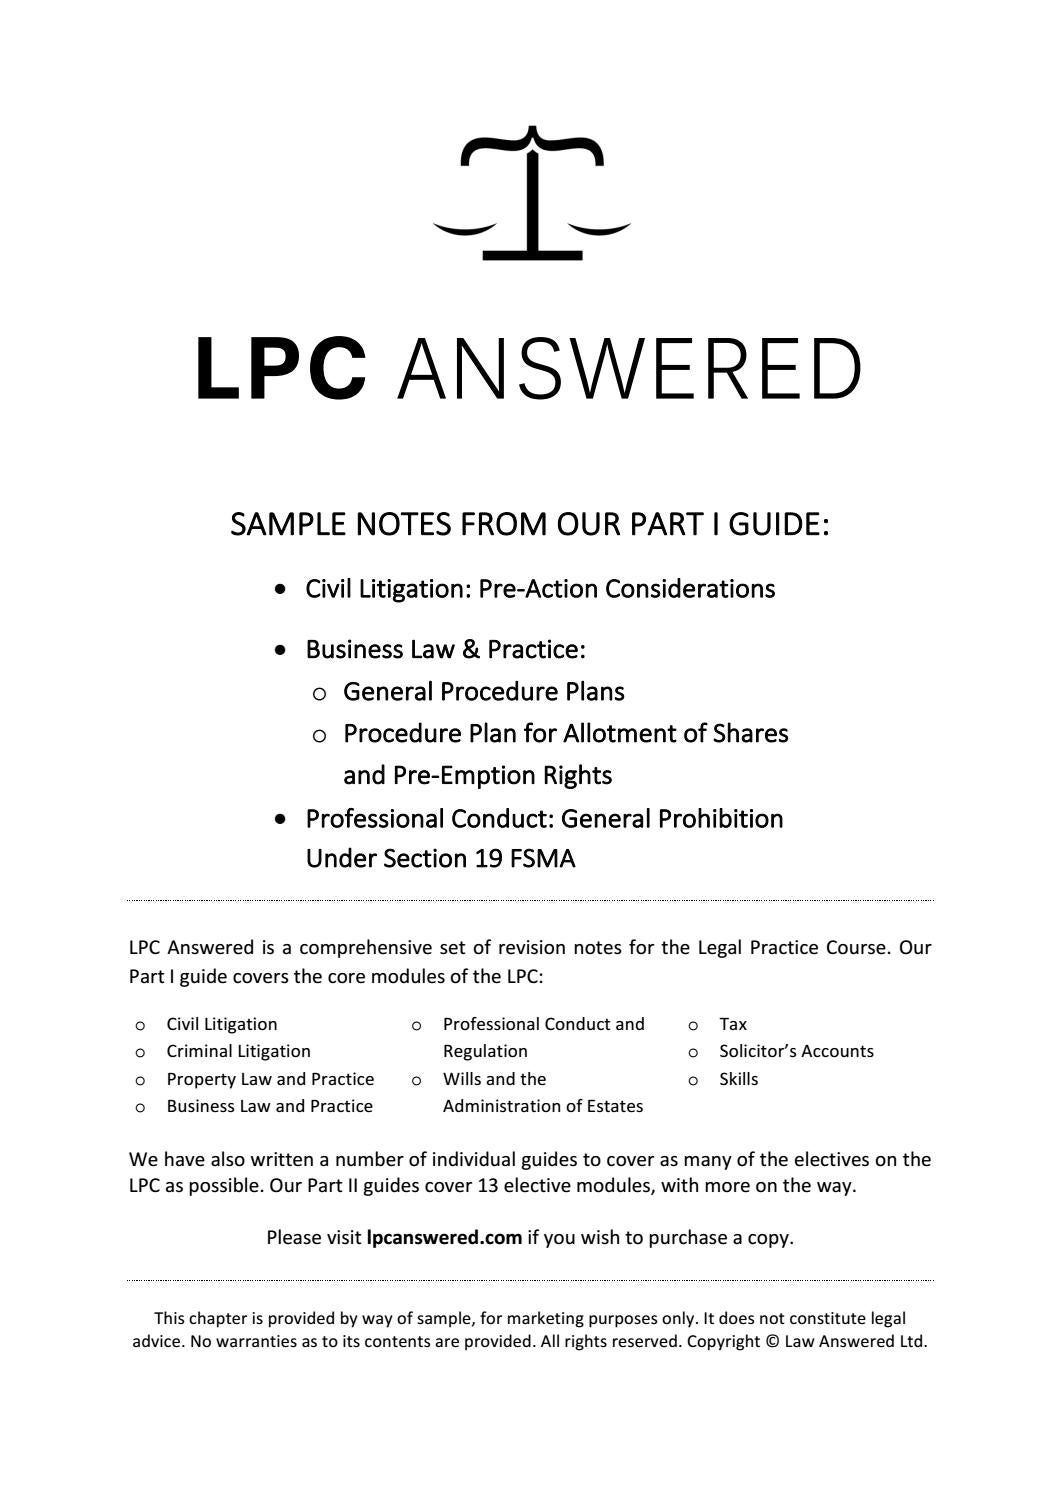 LPC Answered Core Modules Sample by Law Answered - issuu